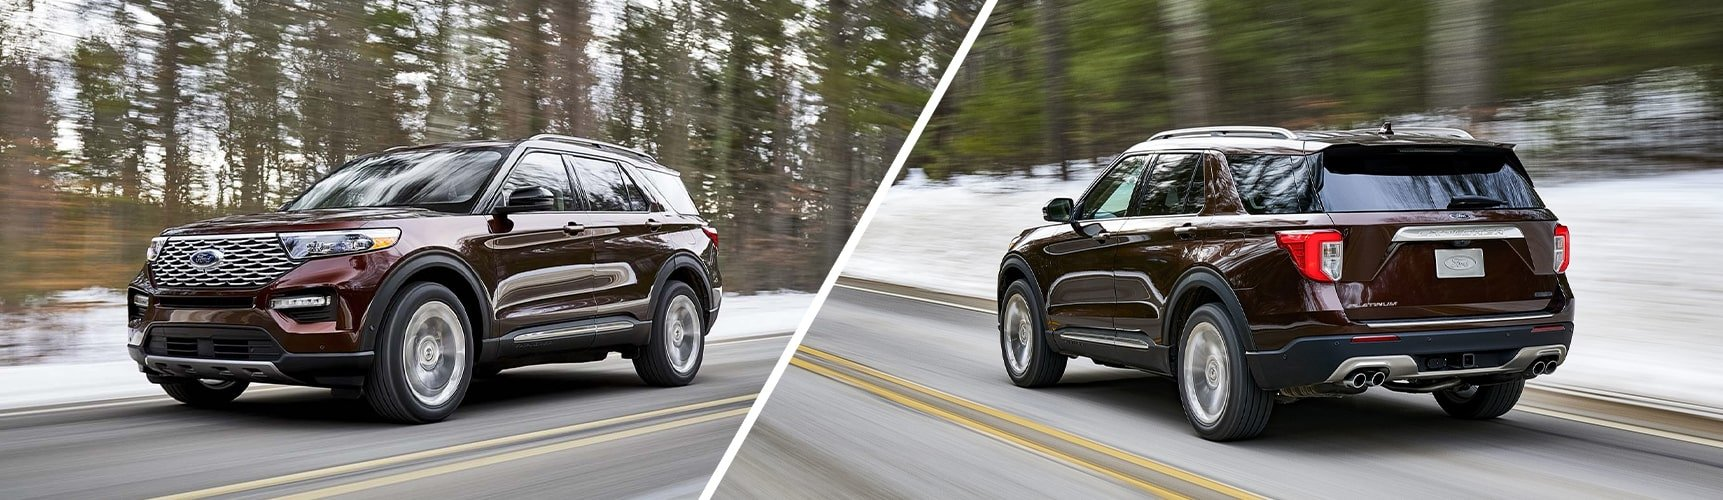 2020 Ford Explorer | Exterior Style